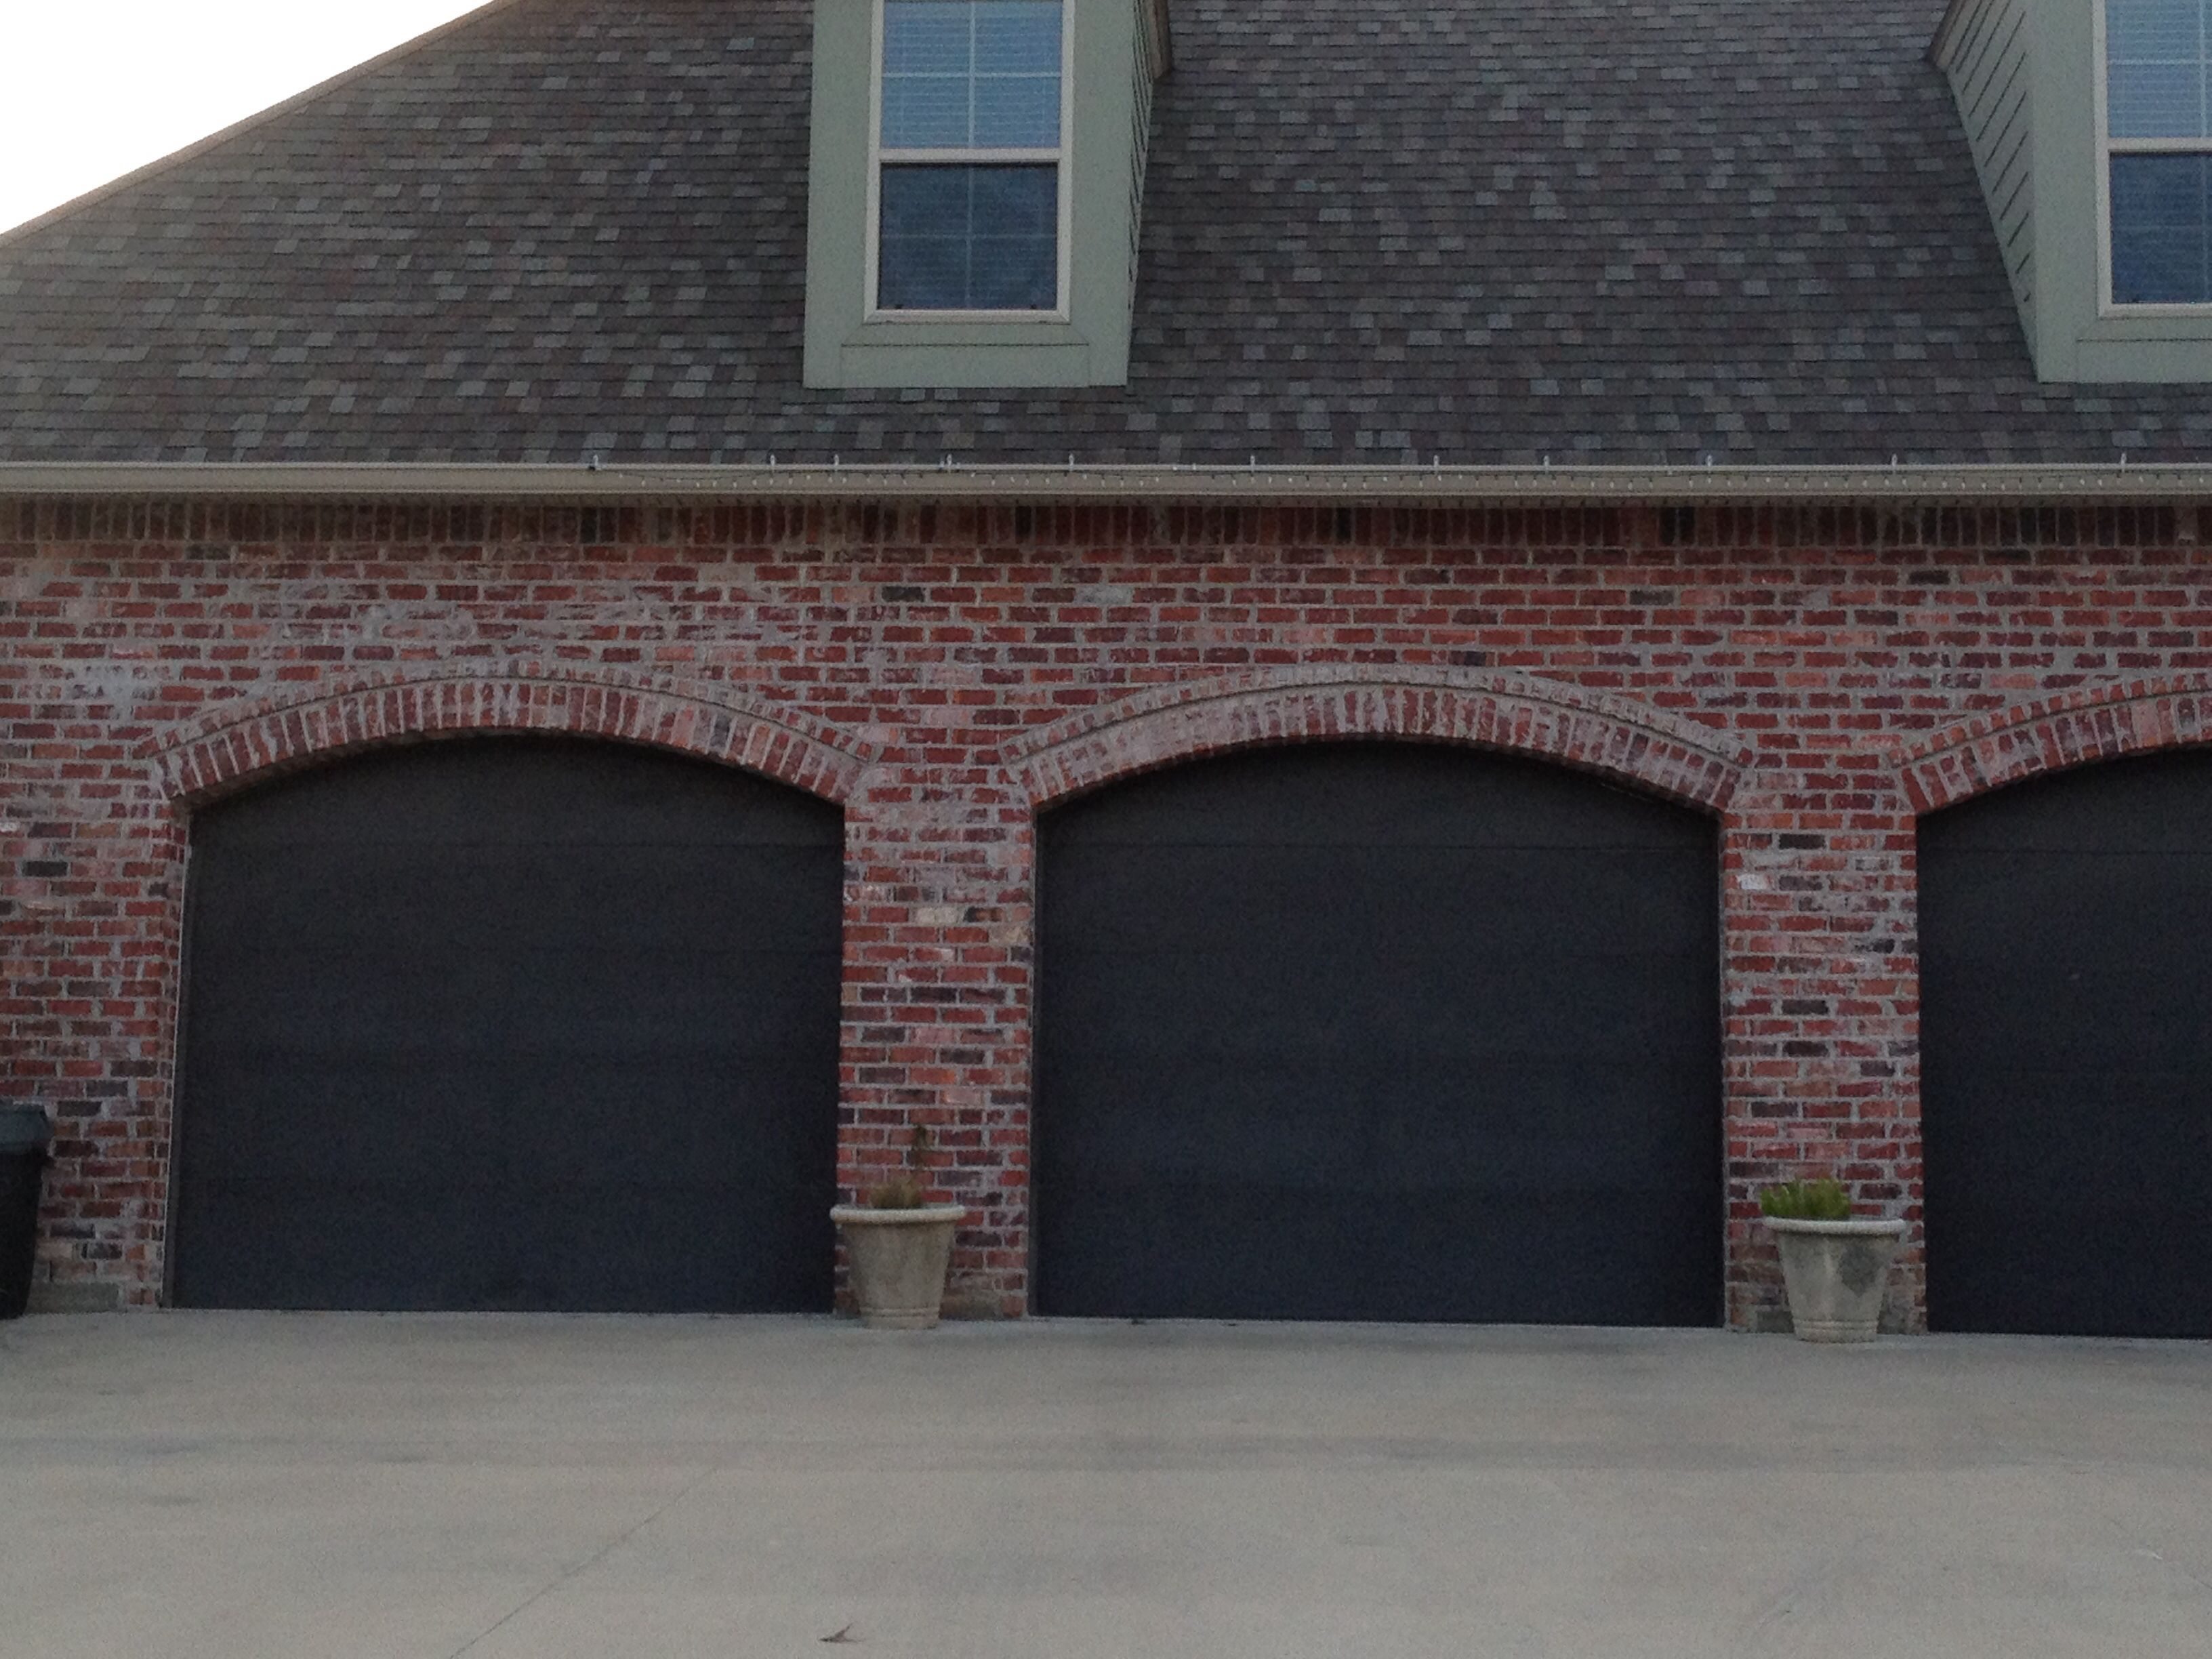 Brick Arched Garage Doors Home Ideas Pinterest Brick Arch Garage Doors And Bricks